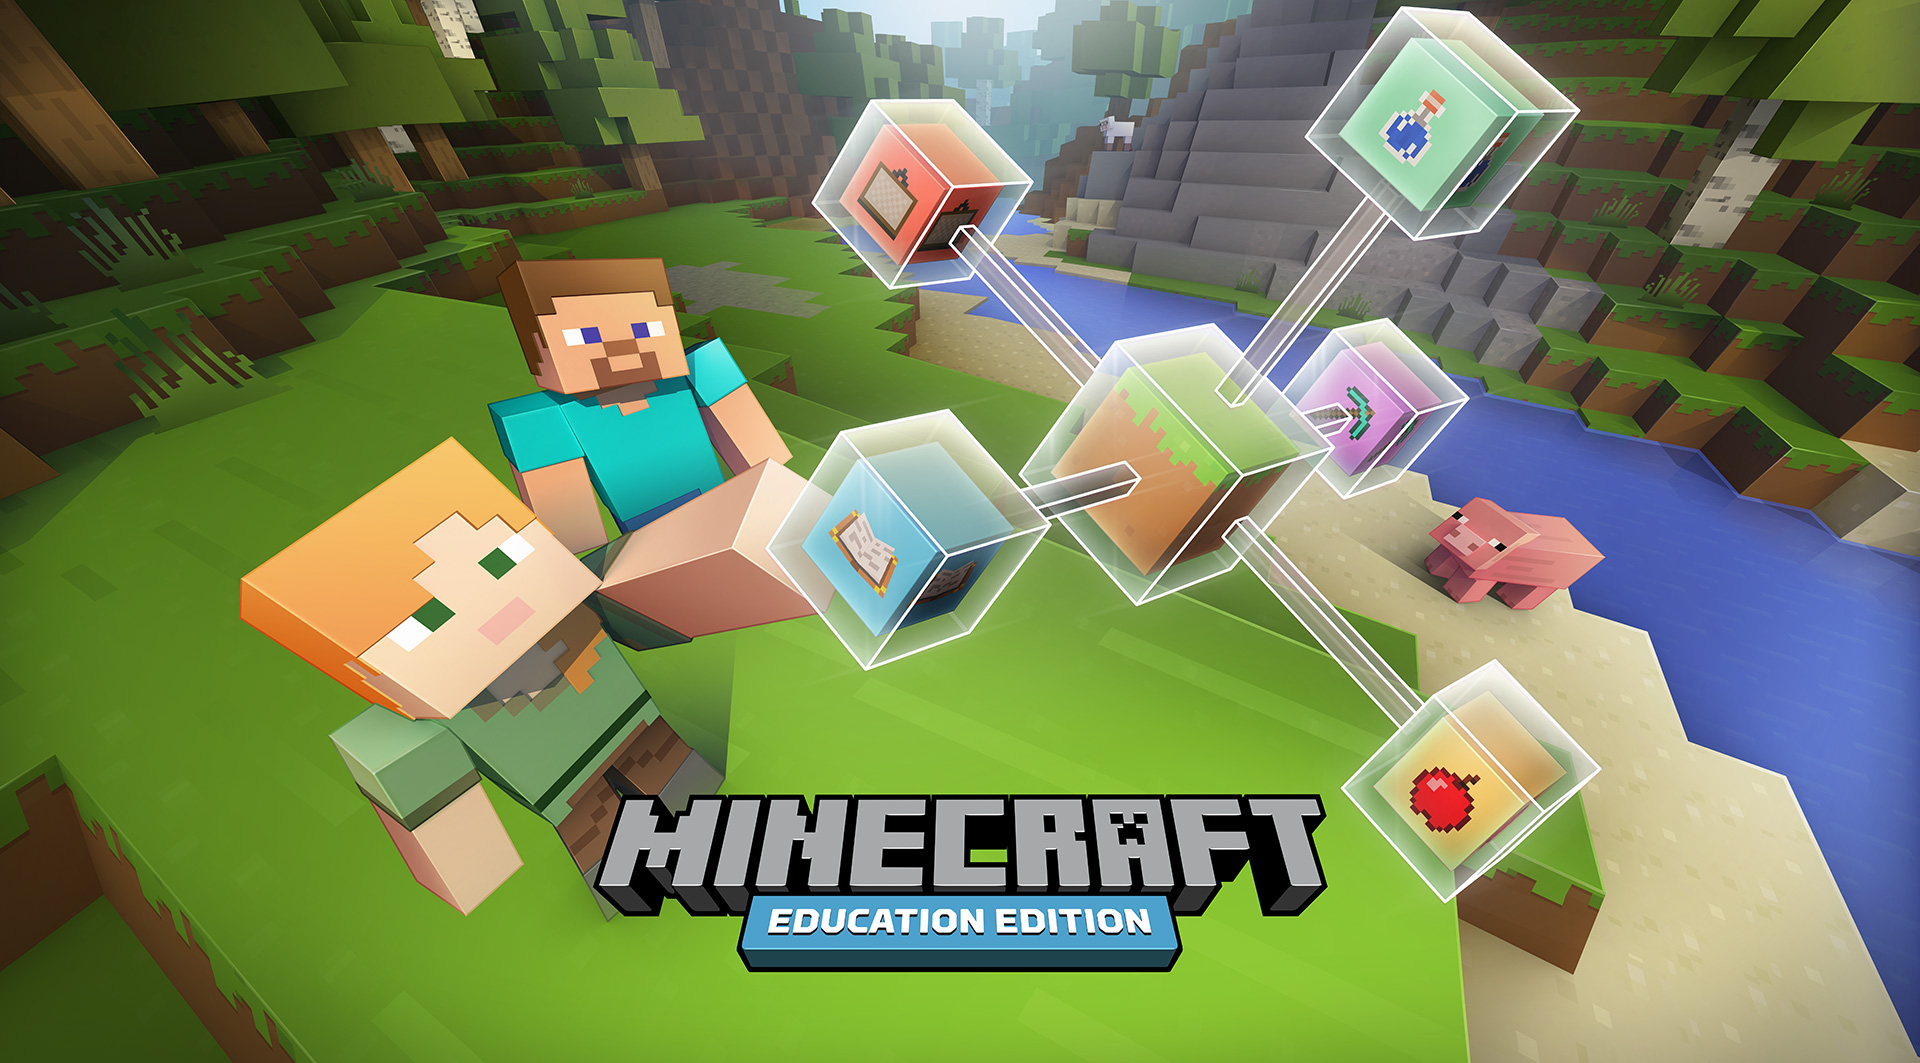 Microsoft To Launch Minecraft Education Edition For Classrooms